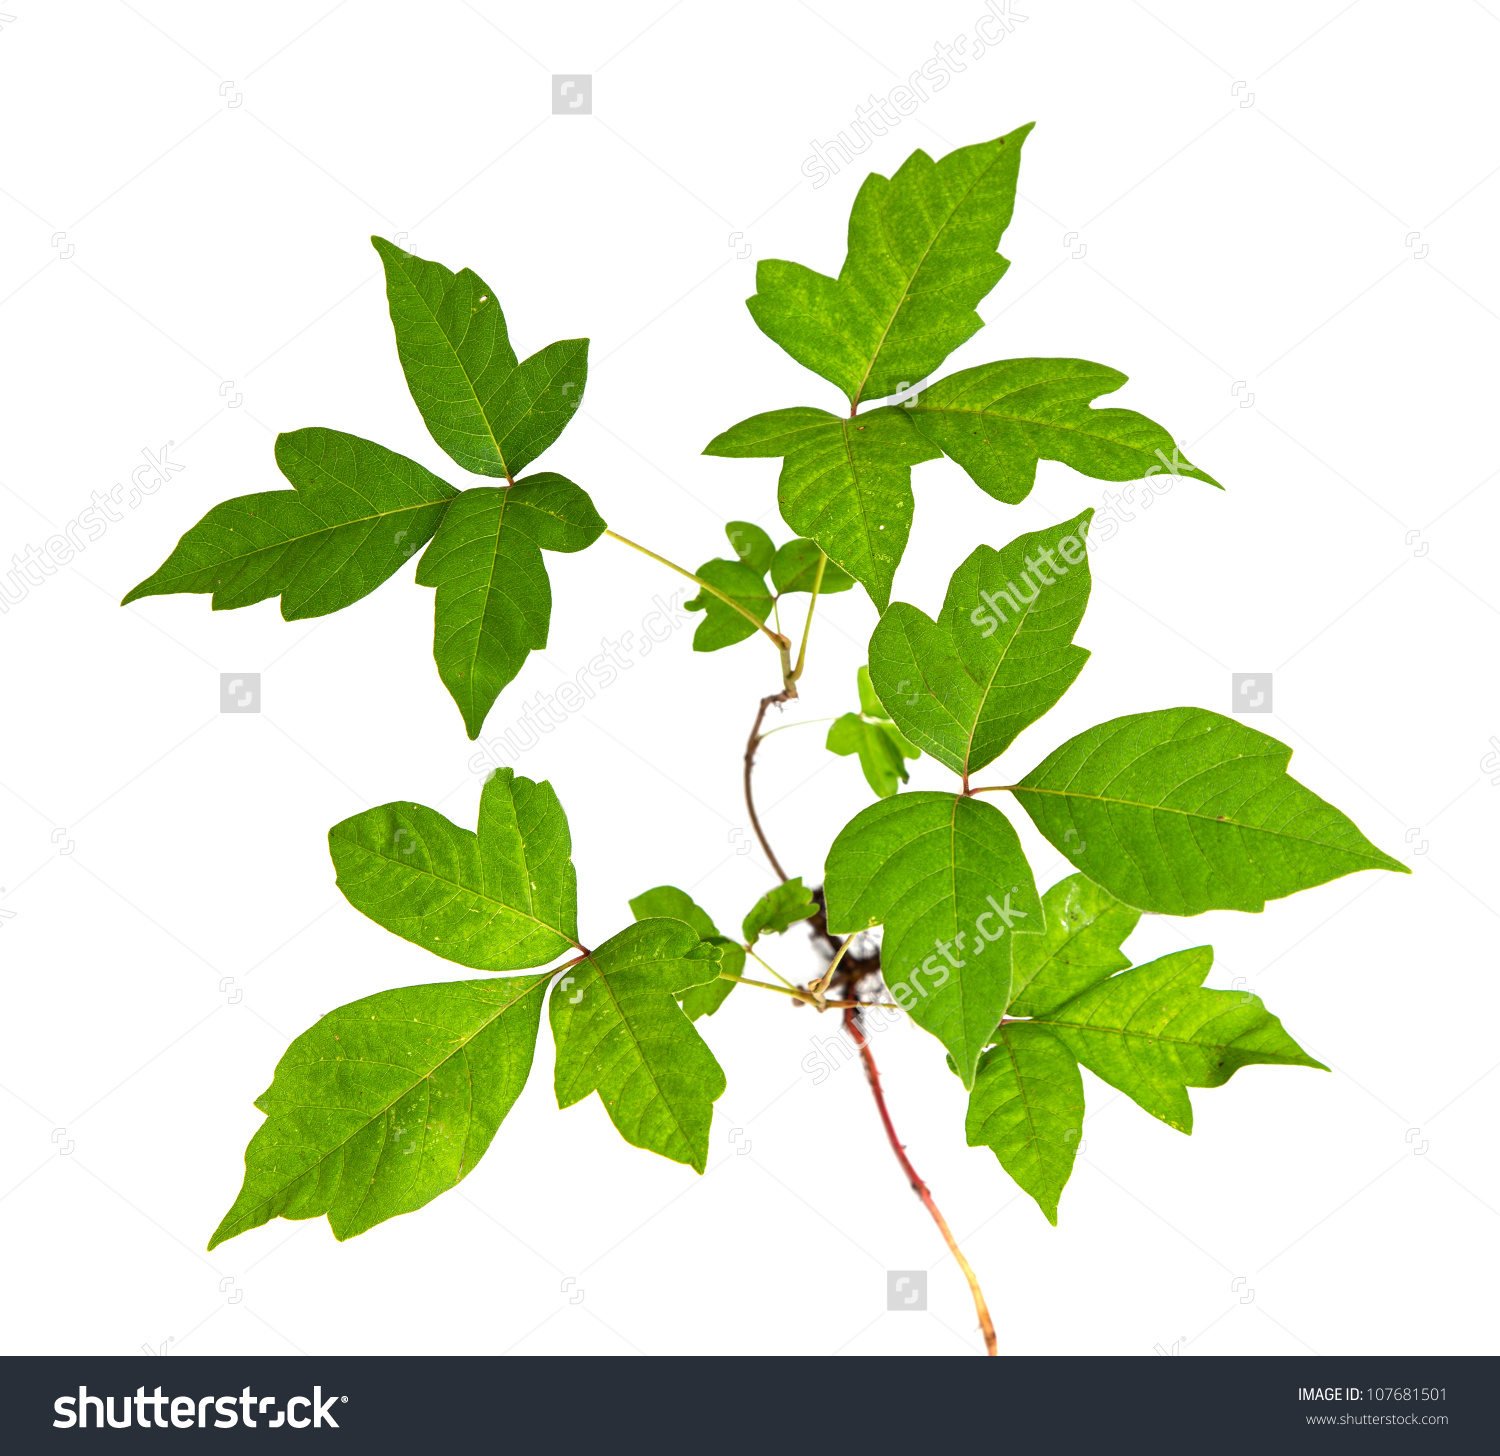 Three Leaves Poison Ivy Closeup Isolated Stock Photo 107681501.